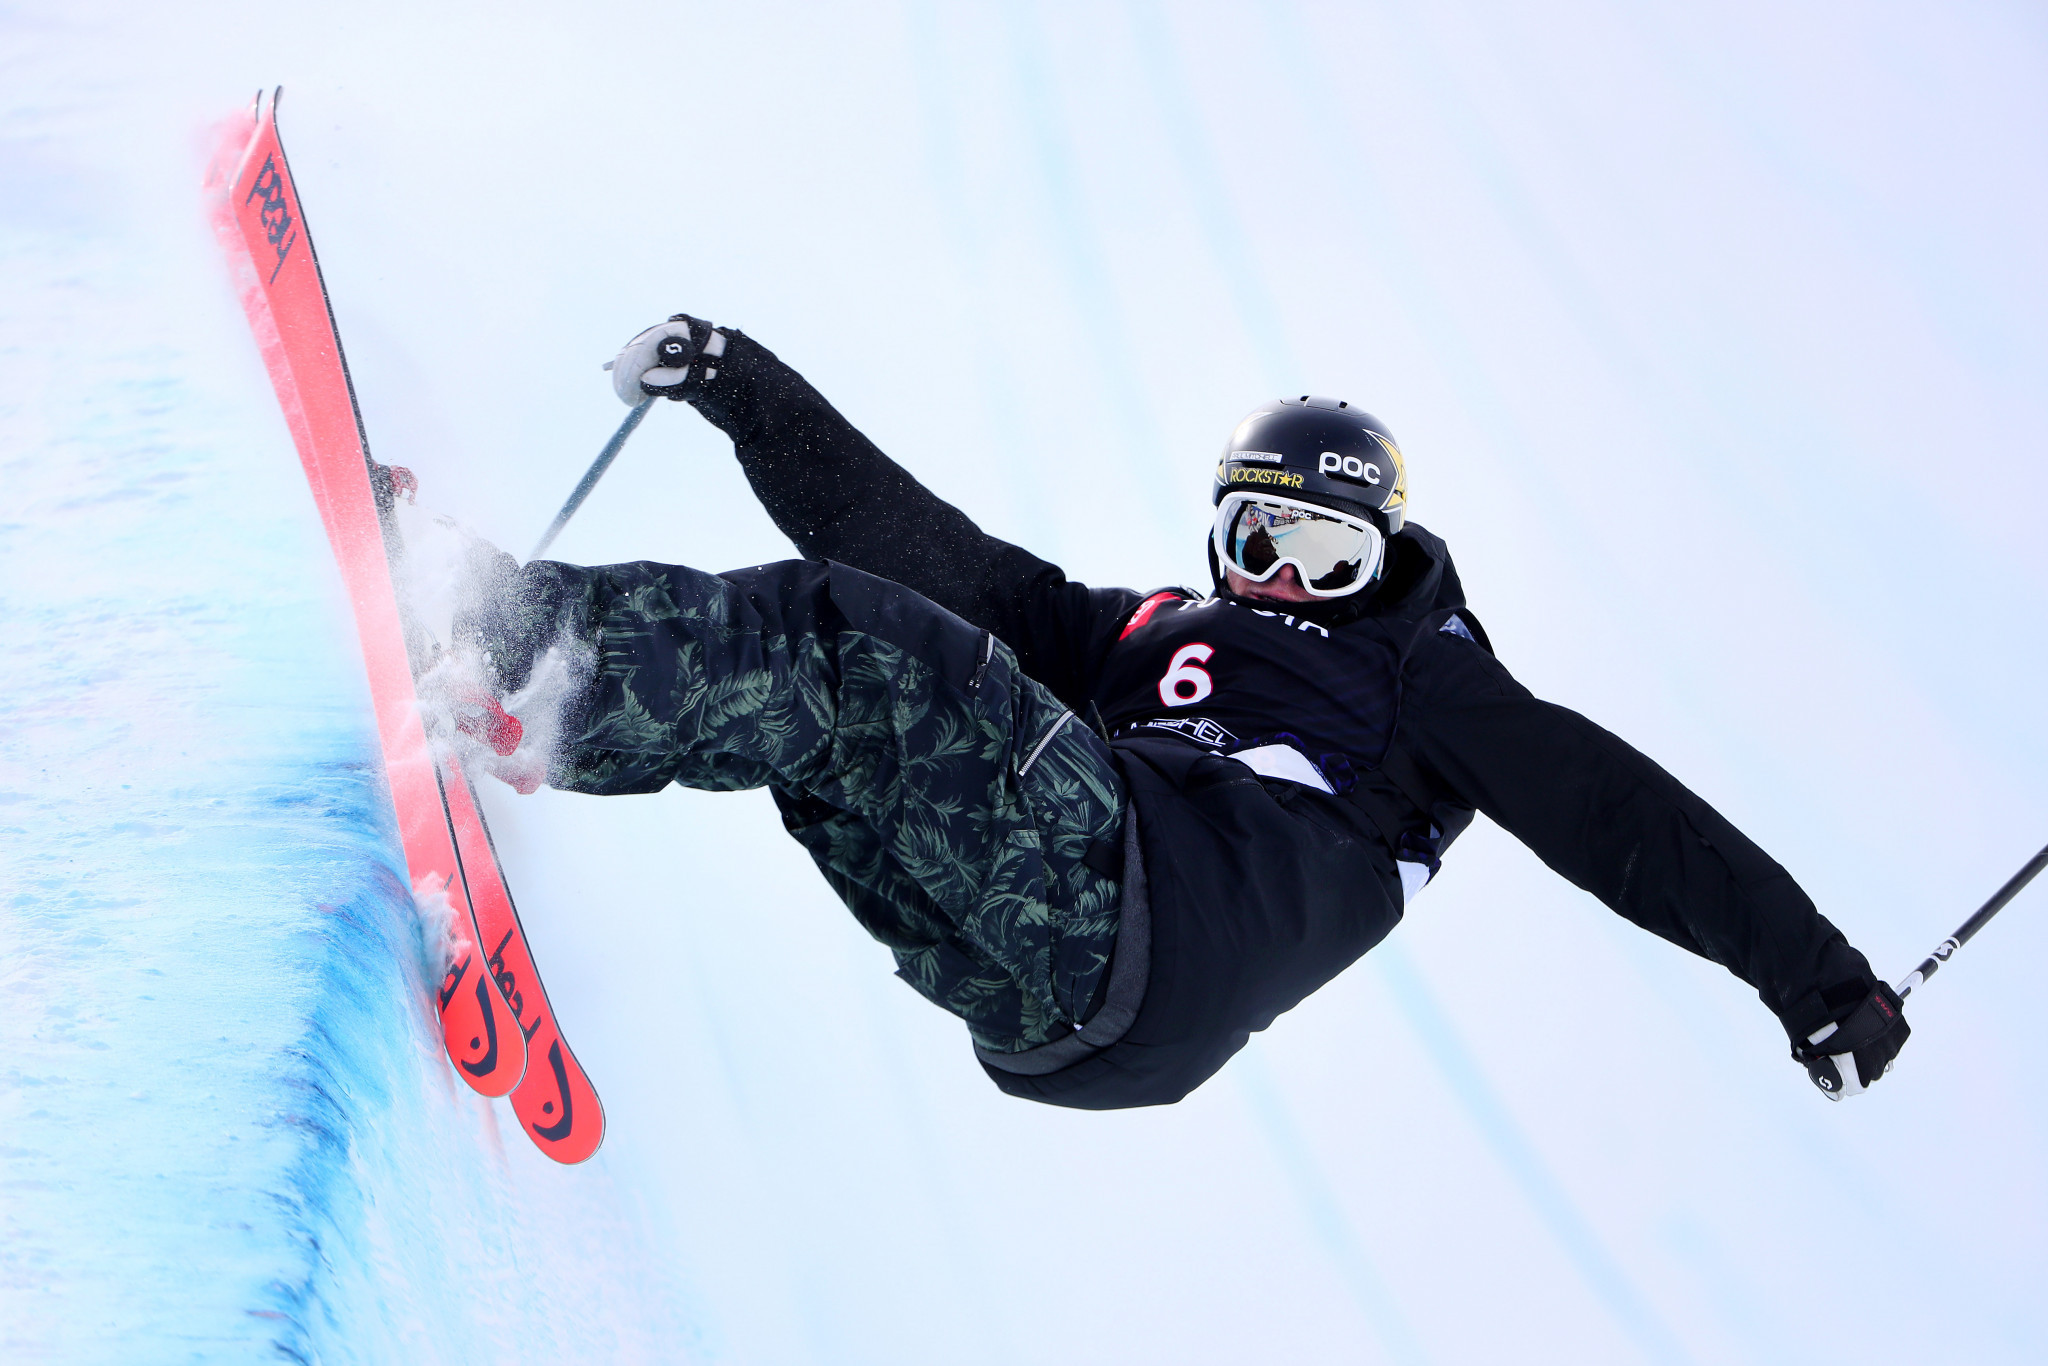 Two-time world champion Aaron Blunck is among the favourites ©Getty Images